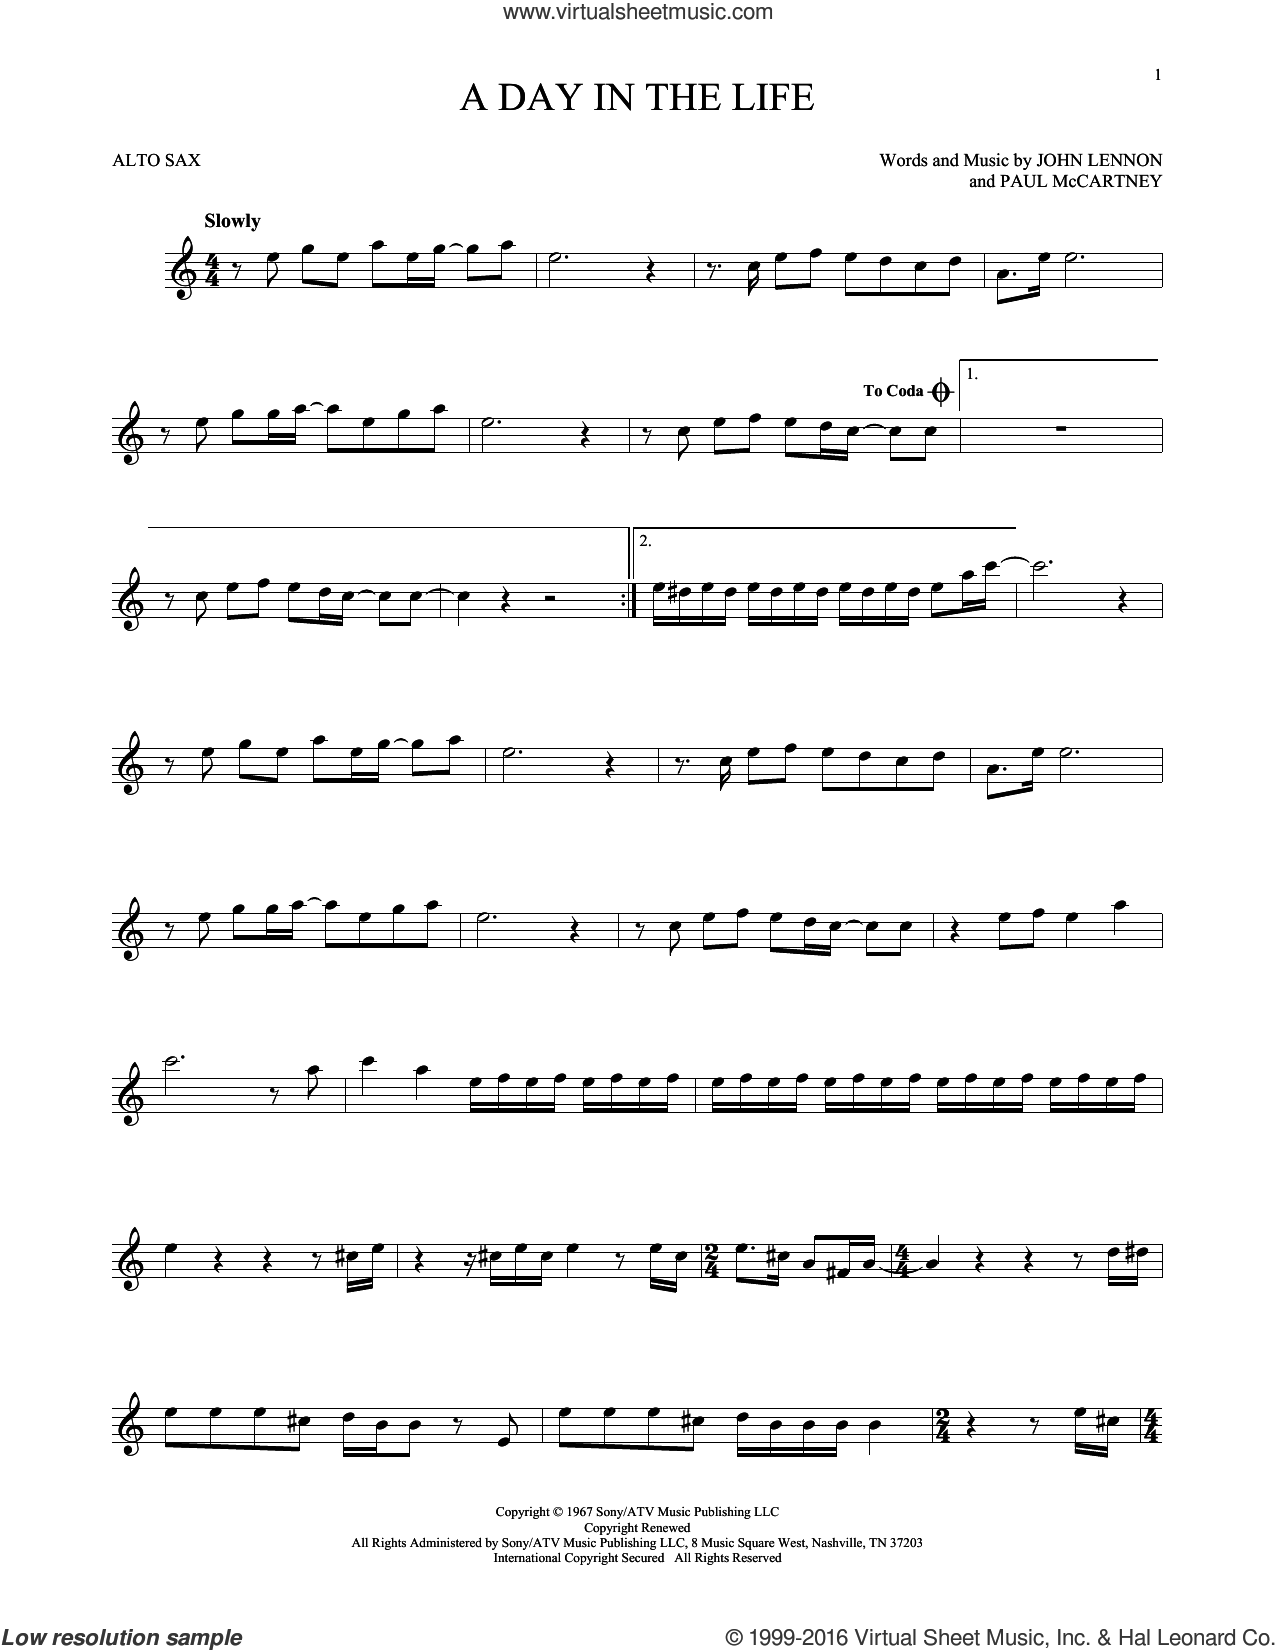 A Day In The Life sheet music for alto saxophone solo by The Beatles, John Lennon and Paul McCartney, intermediate skill level